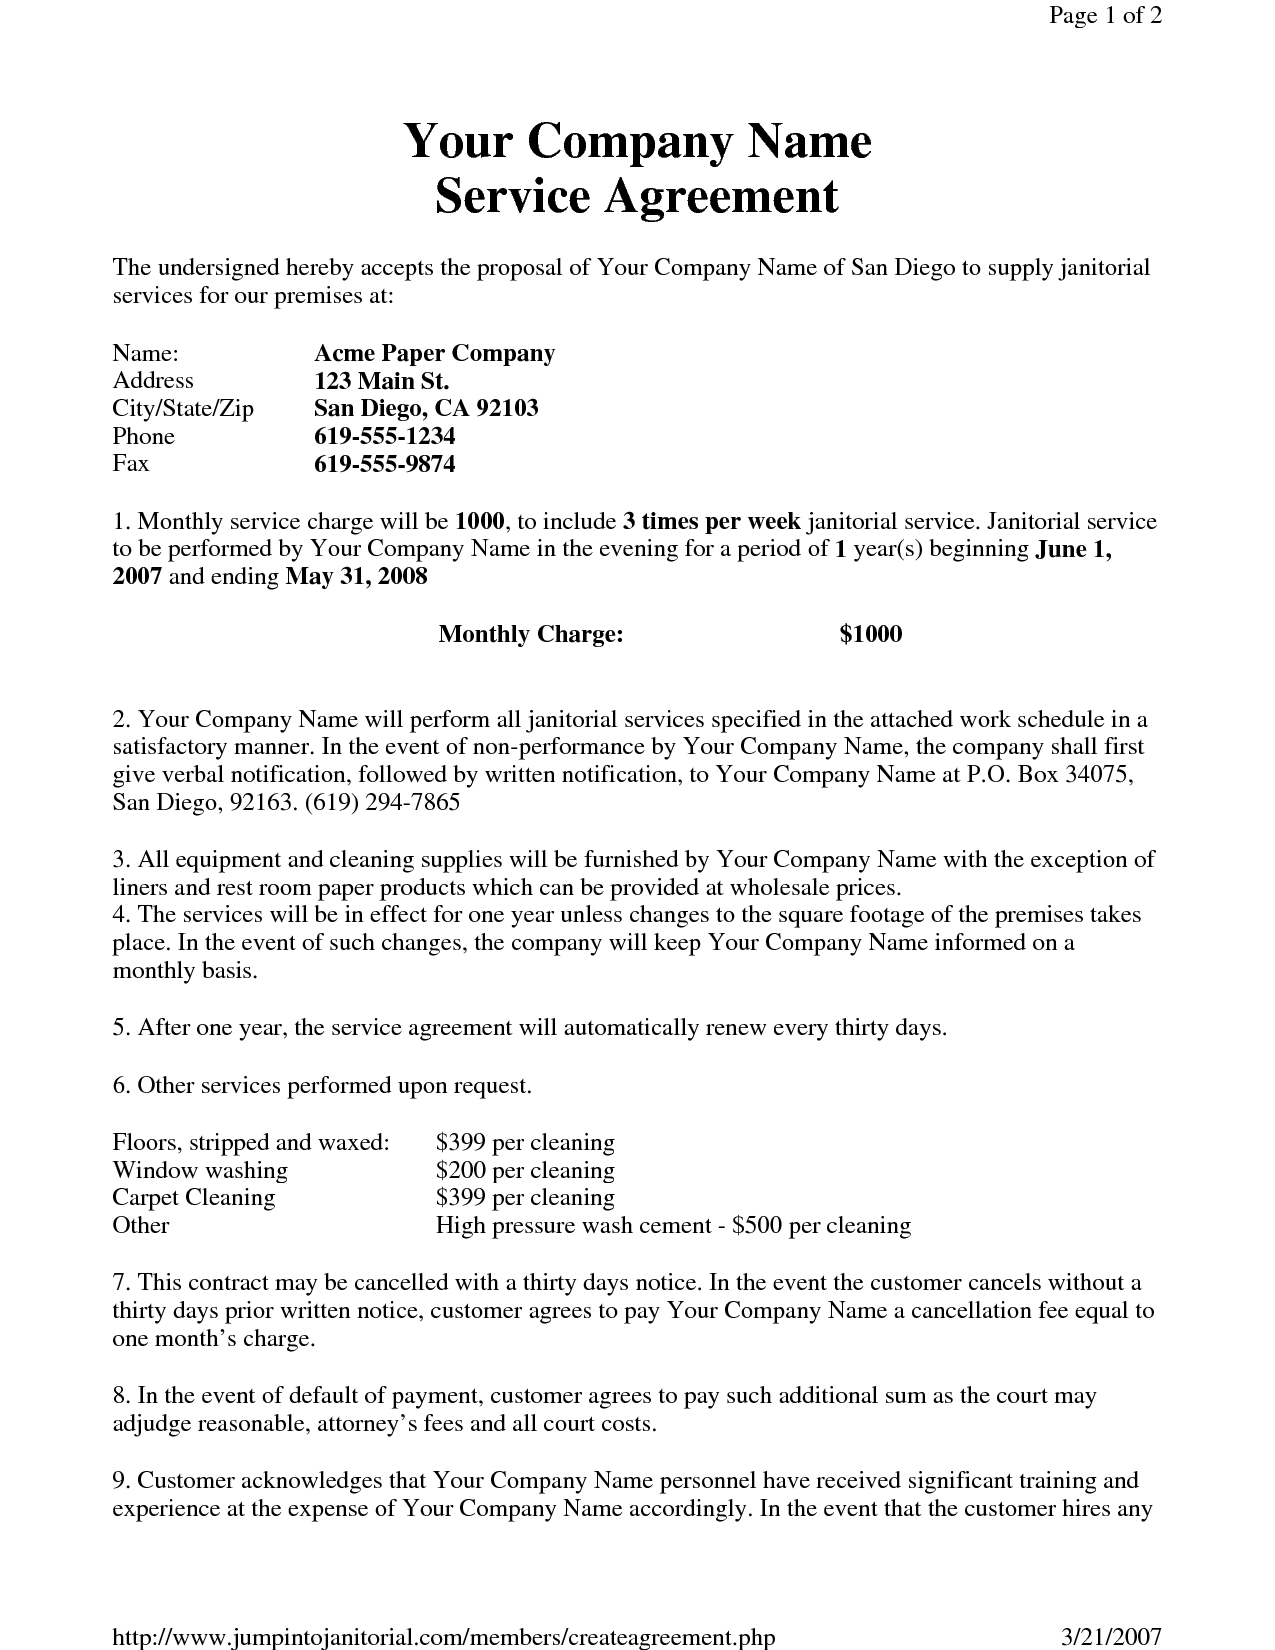 Janitorial Service Agreement By Hgh19249